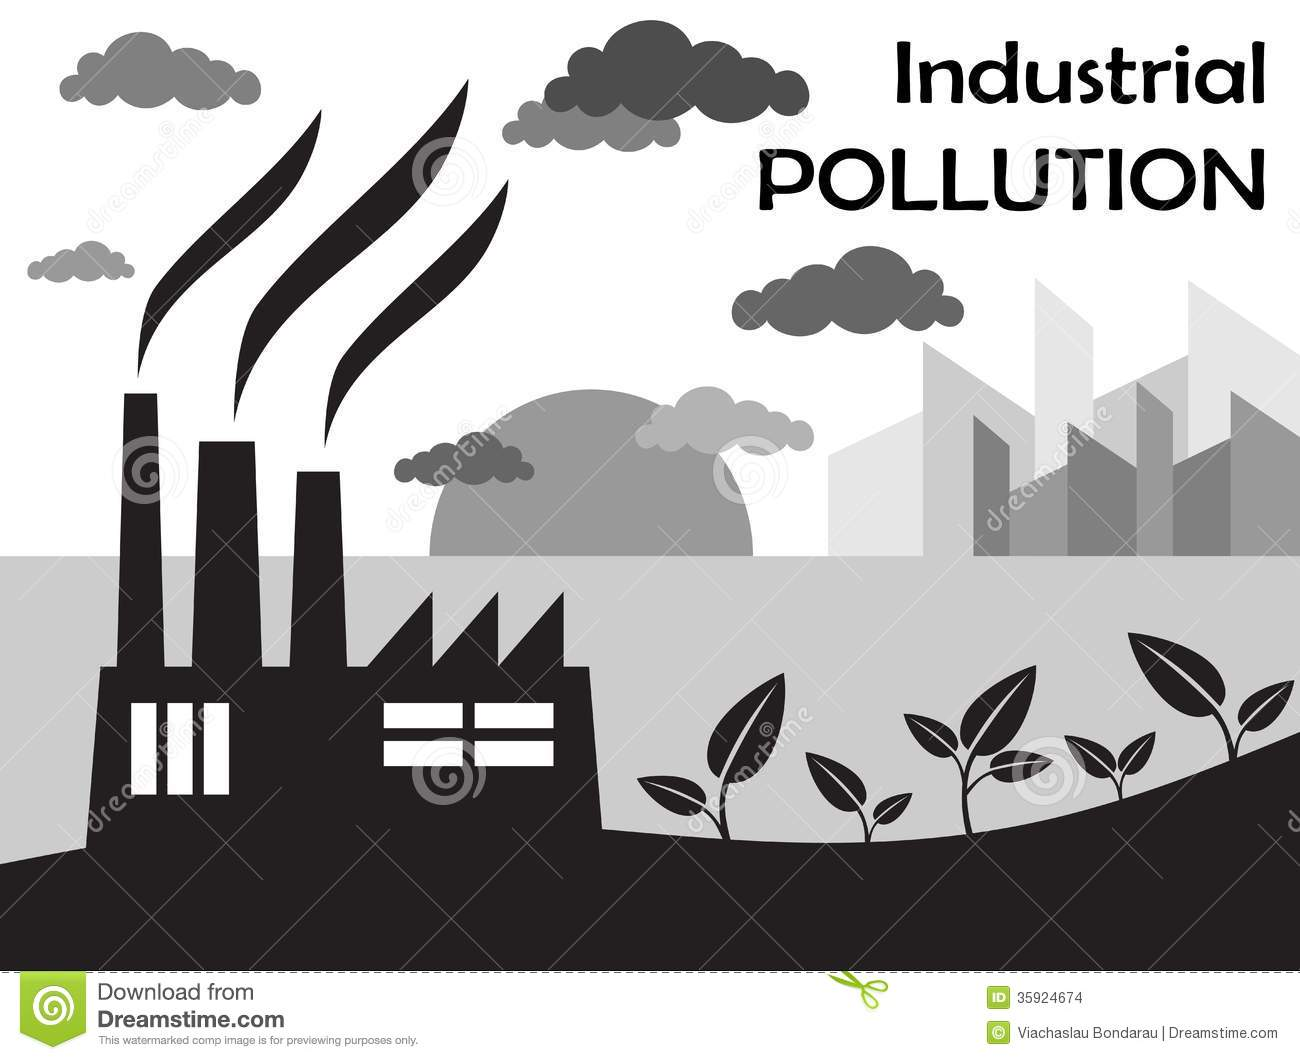 industrial pollution clipart - photo #42